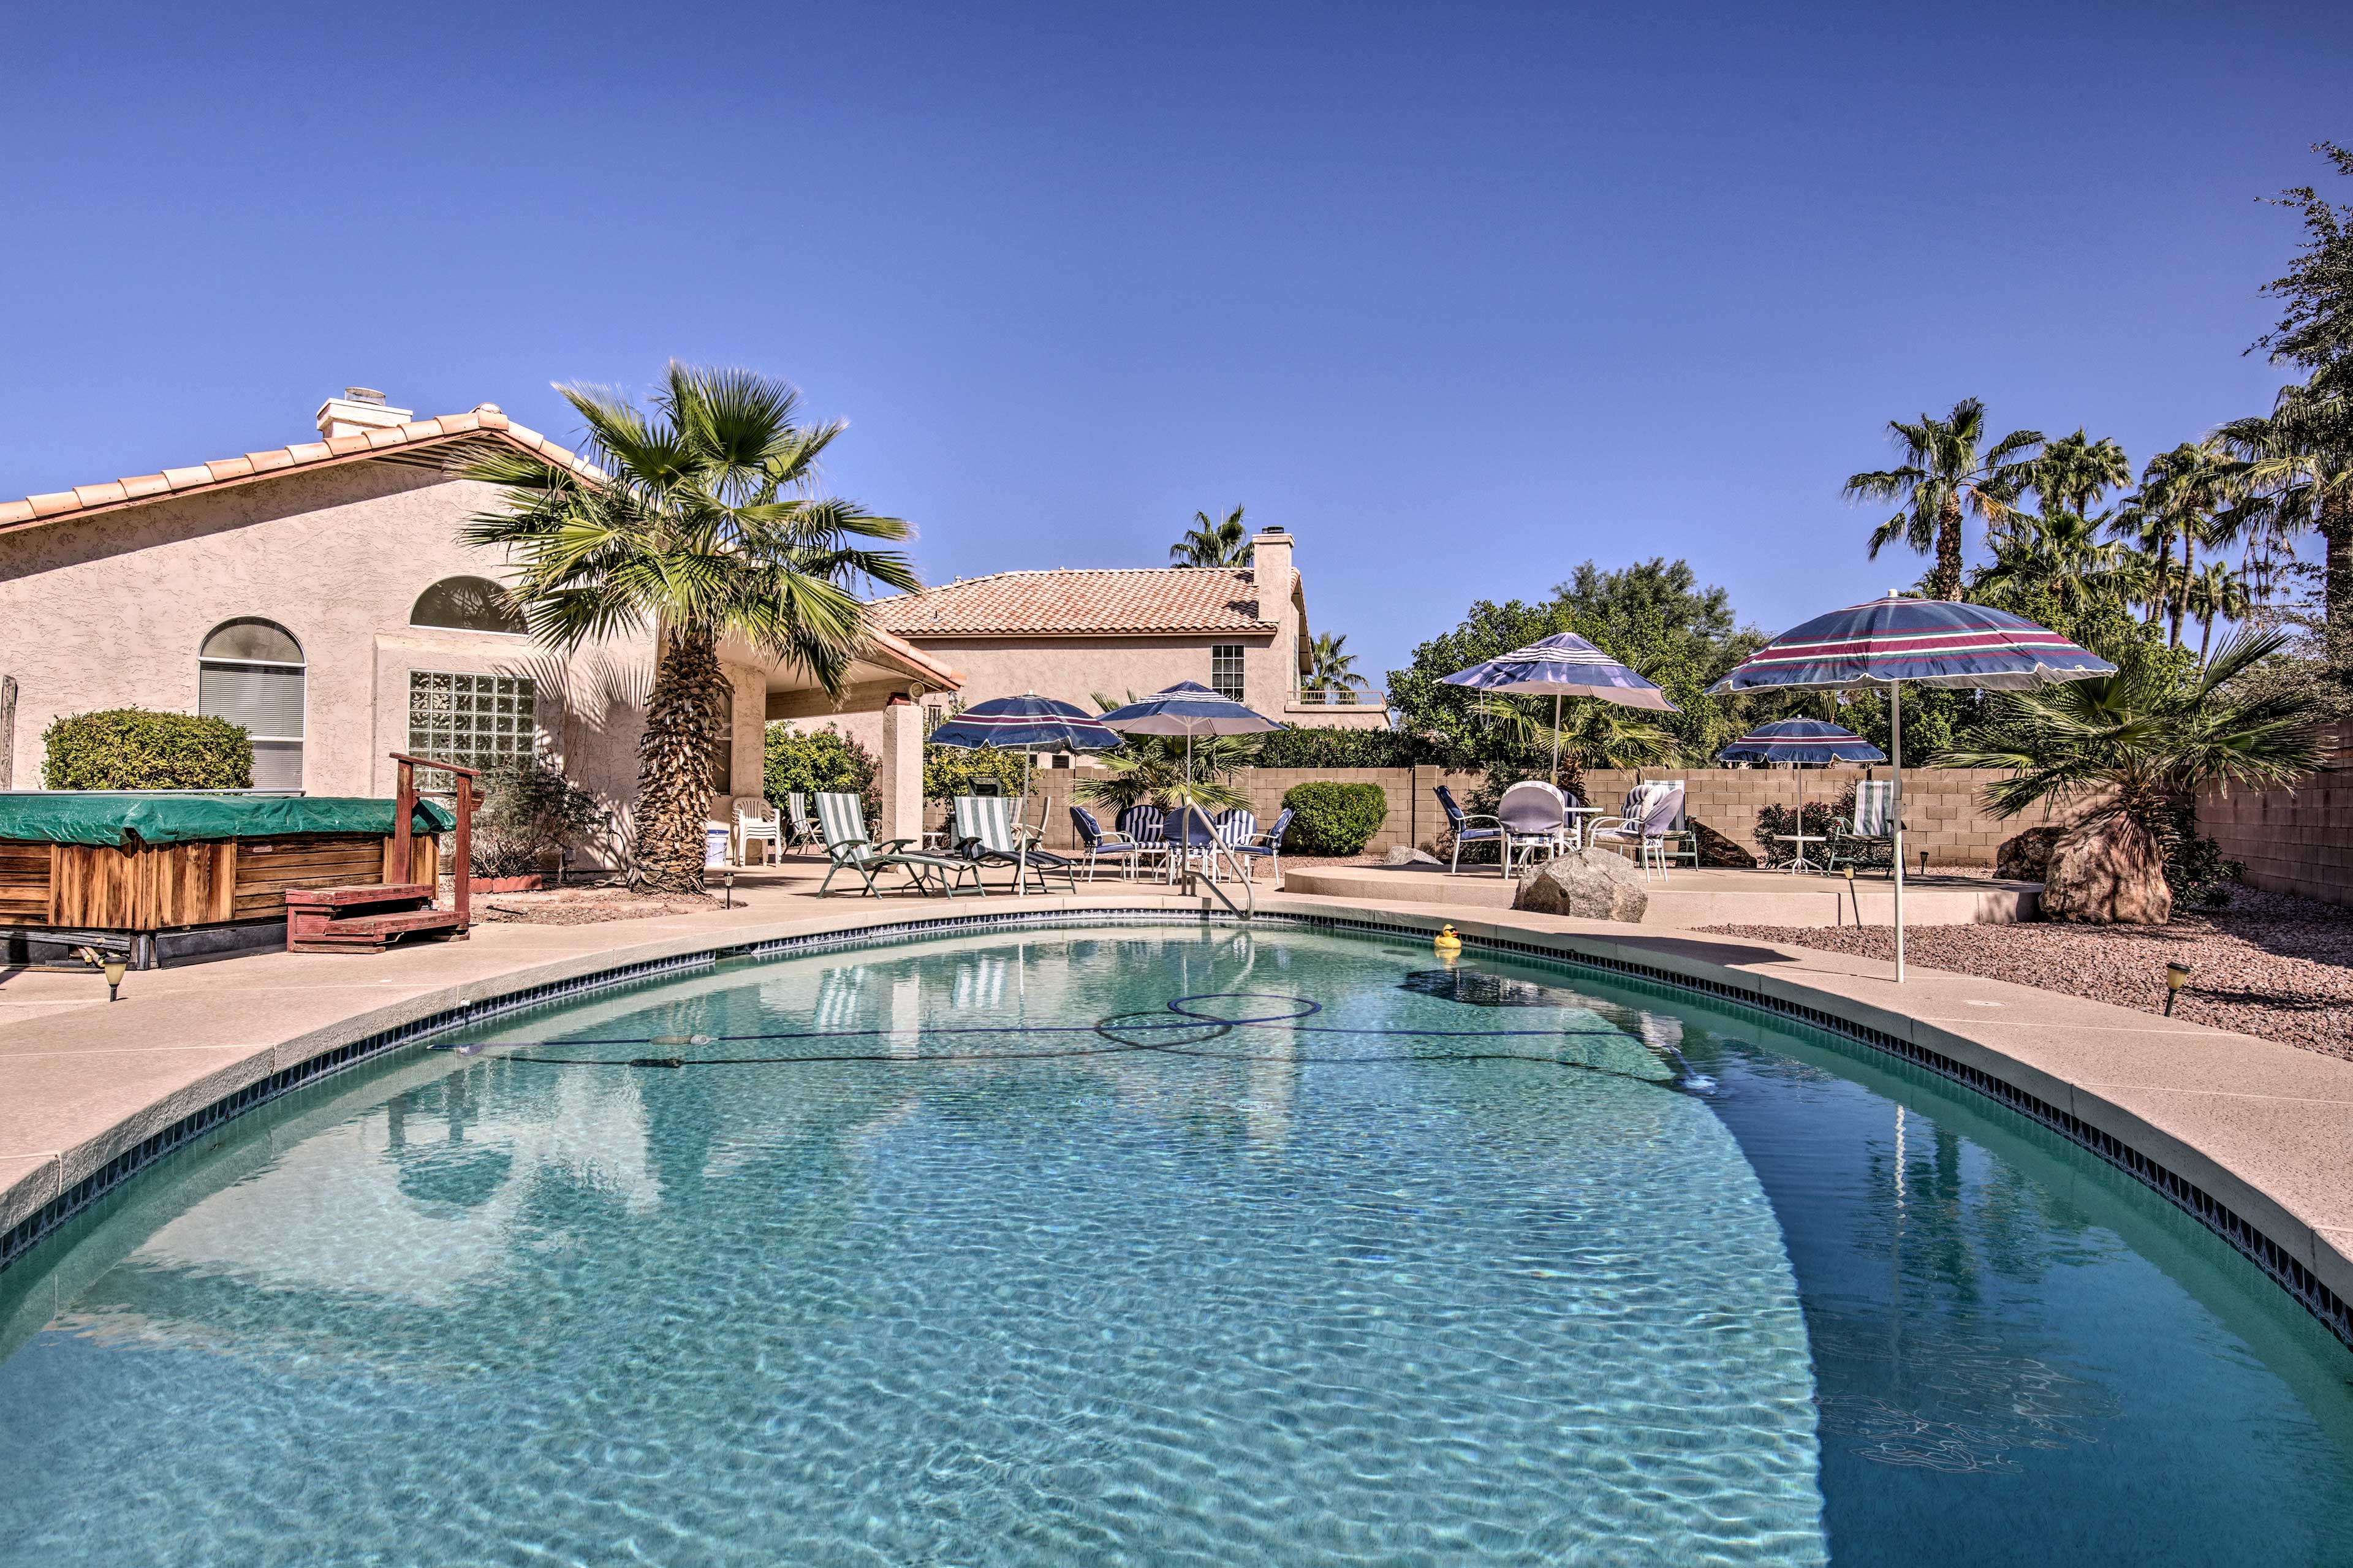 Challenge your loved ones to a swimming competition at this Phoenix home.